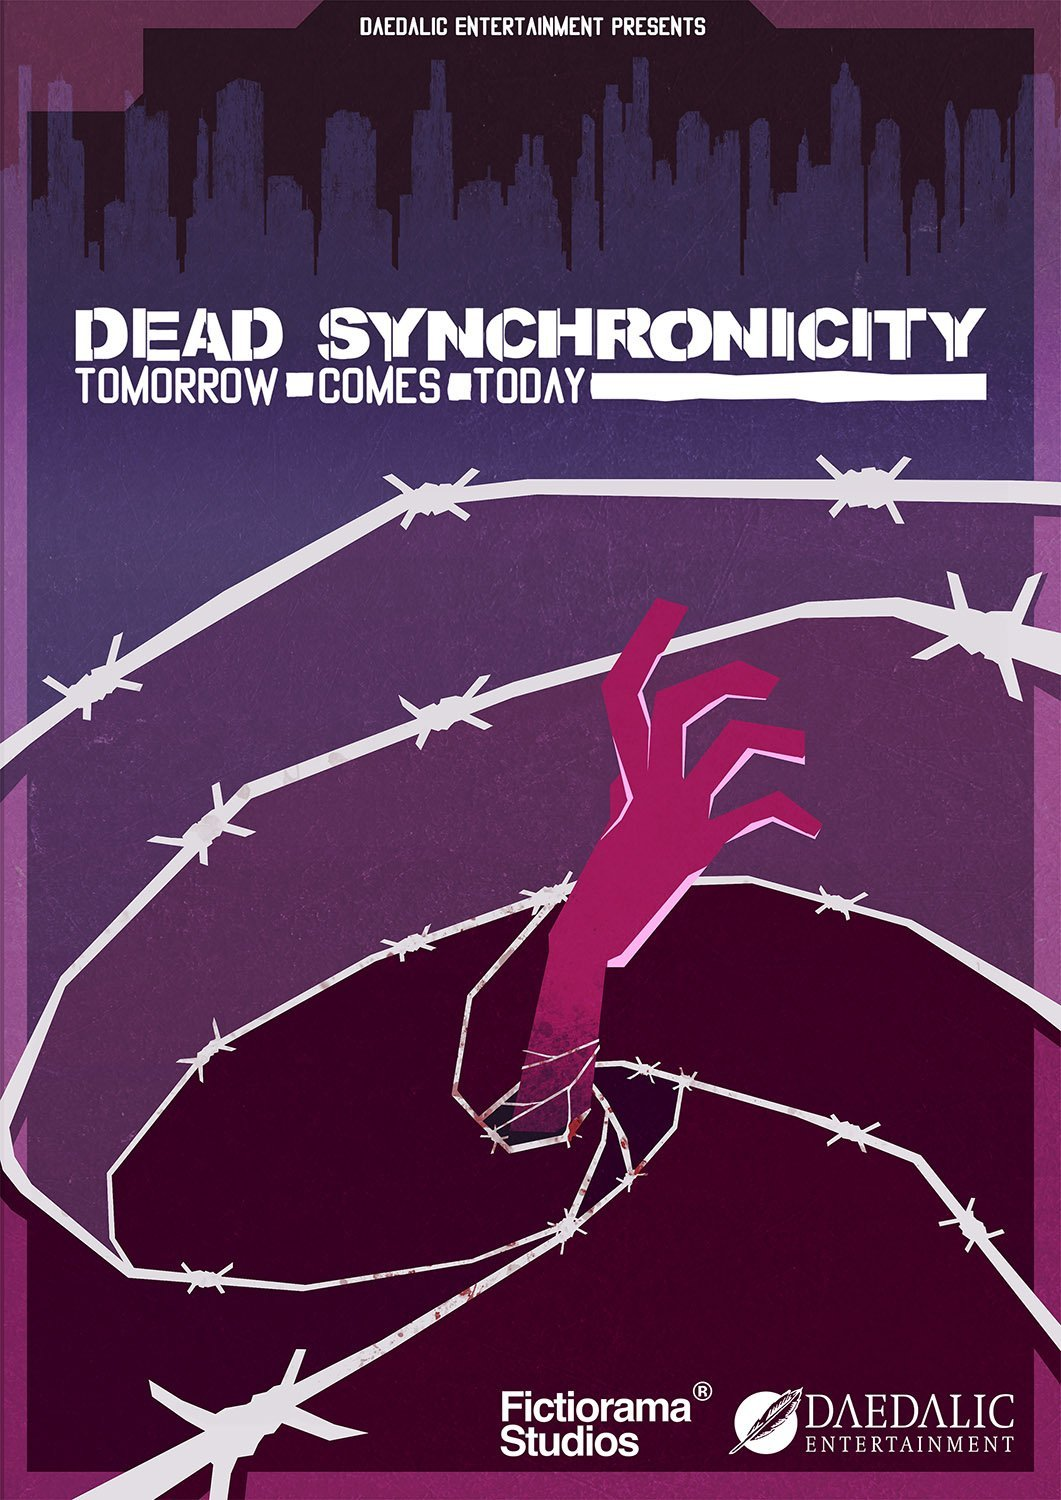 Dead Synchronicity: Tomorrow Comes Today v.1.0.10 [GOG] (2015)